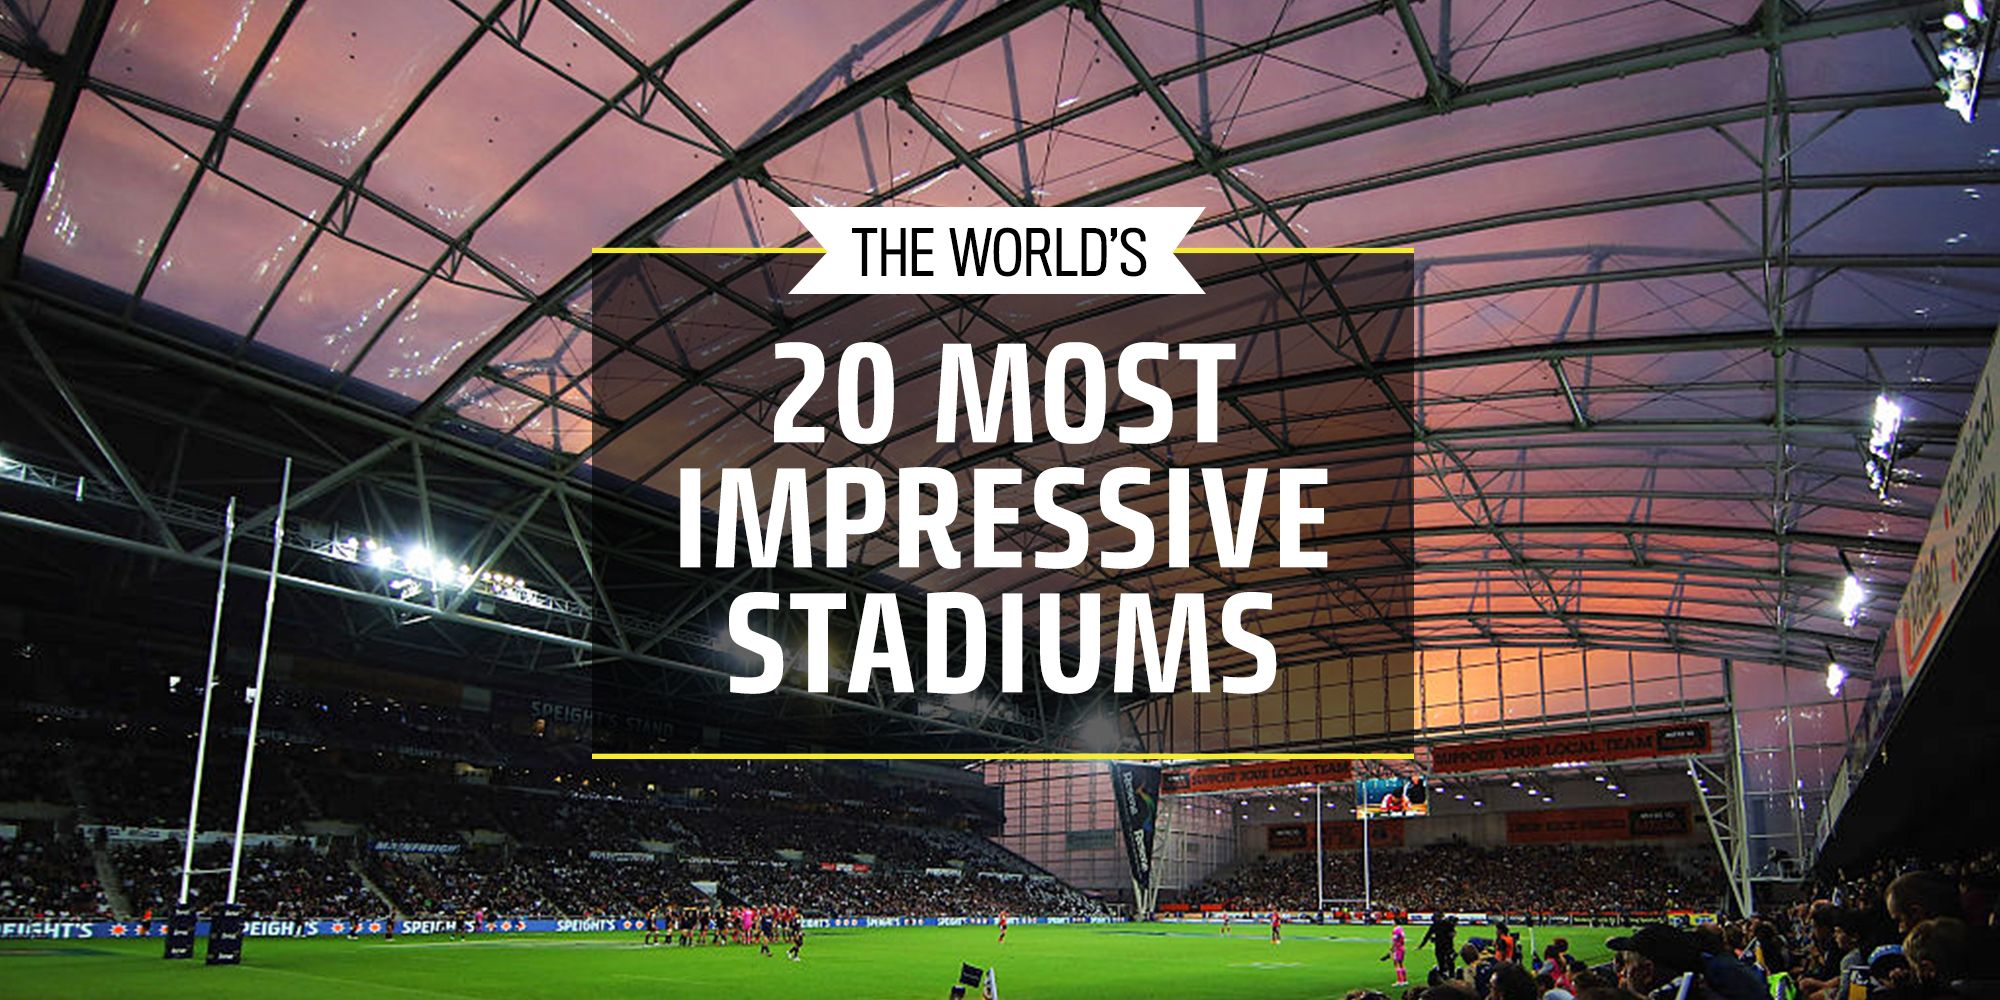 Of The Worlds Most Impressive Stadiums - 10 of the worlds oldest active sports stadiums